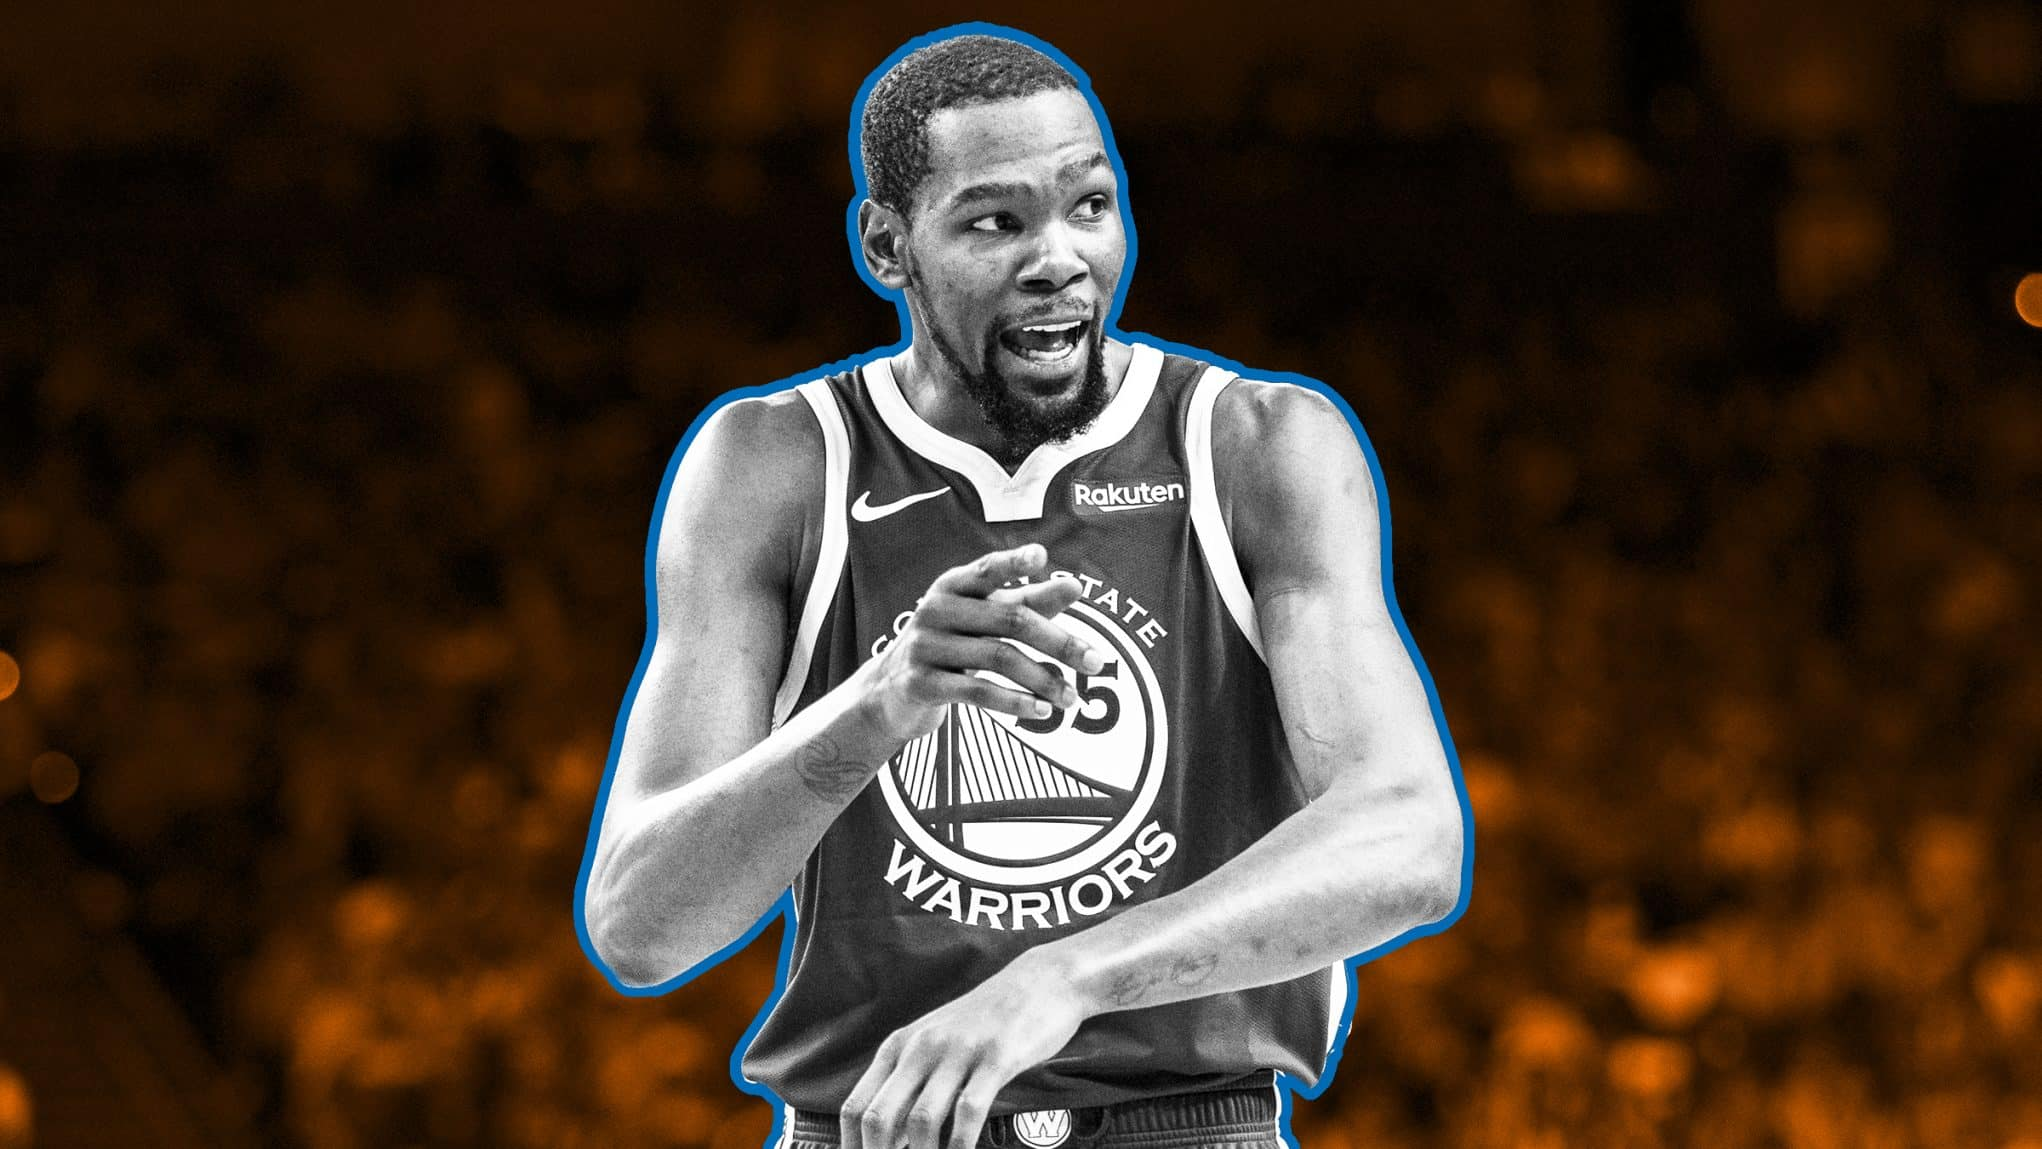 73934c4390b The reasons Kevin Durant should sign with the New York Knicks. By. Allan  Wright. -. 04 02 2019. Kevin Durant